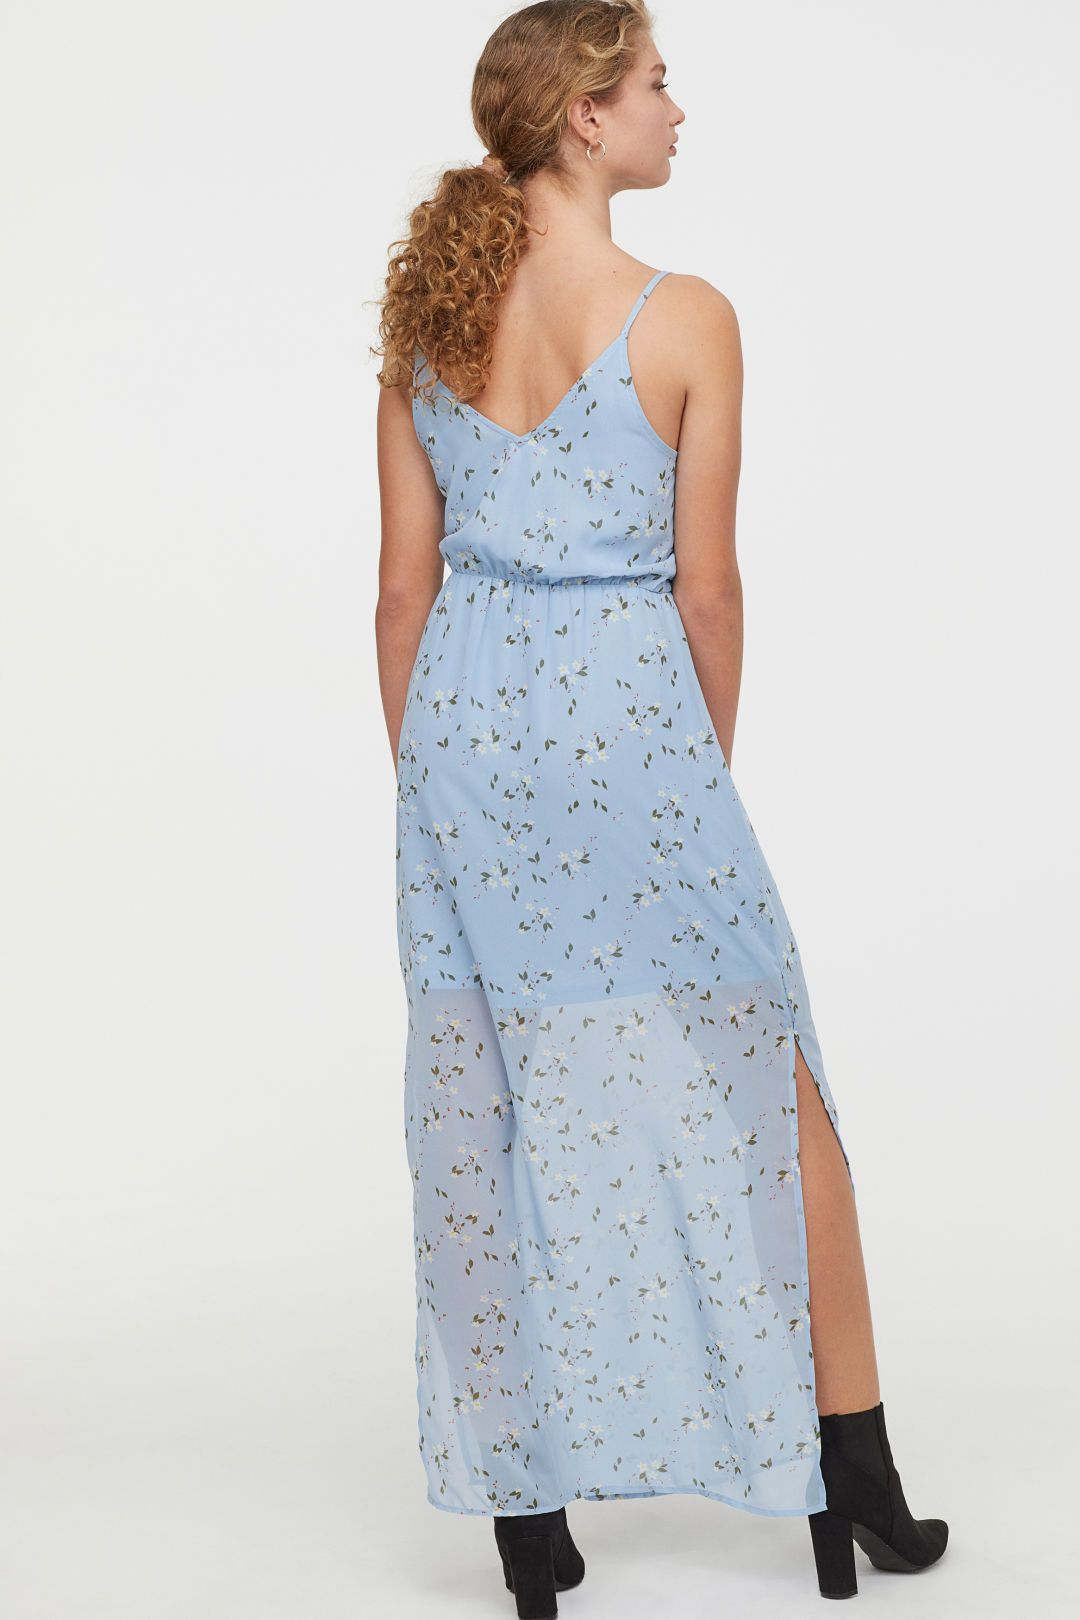 7f164c7384e H&M Chiffon Maxi Dress - Blue in 2019 | Wish List | Chiffon maxi ...